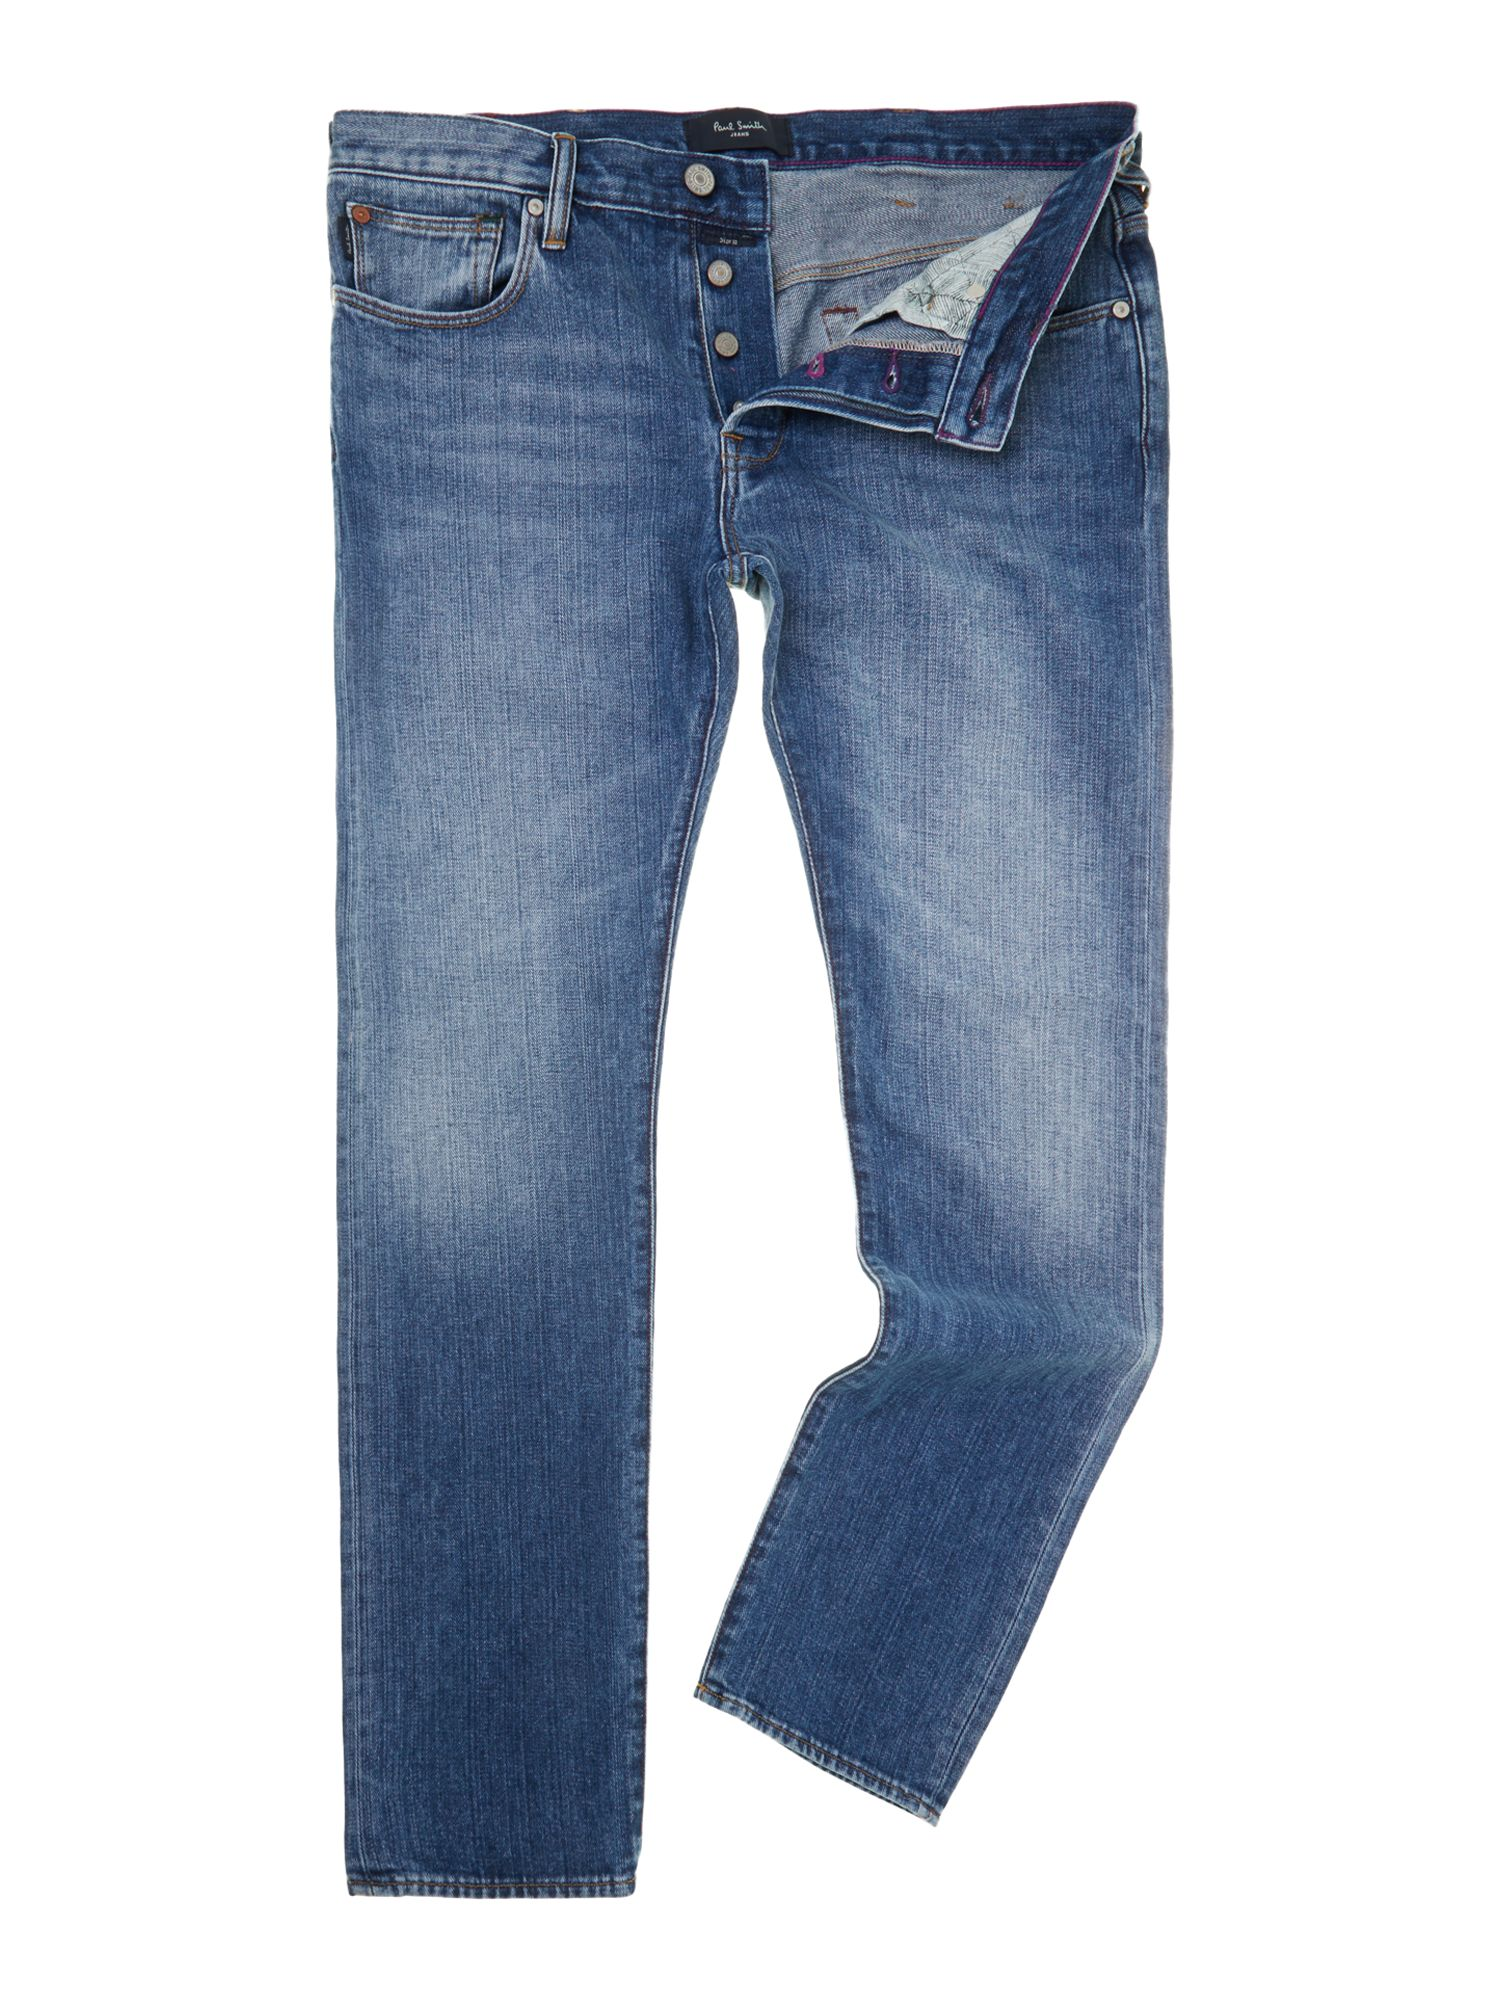 Tapered light wash jeans